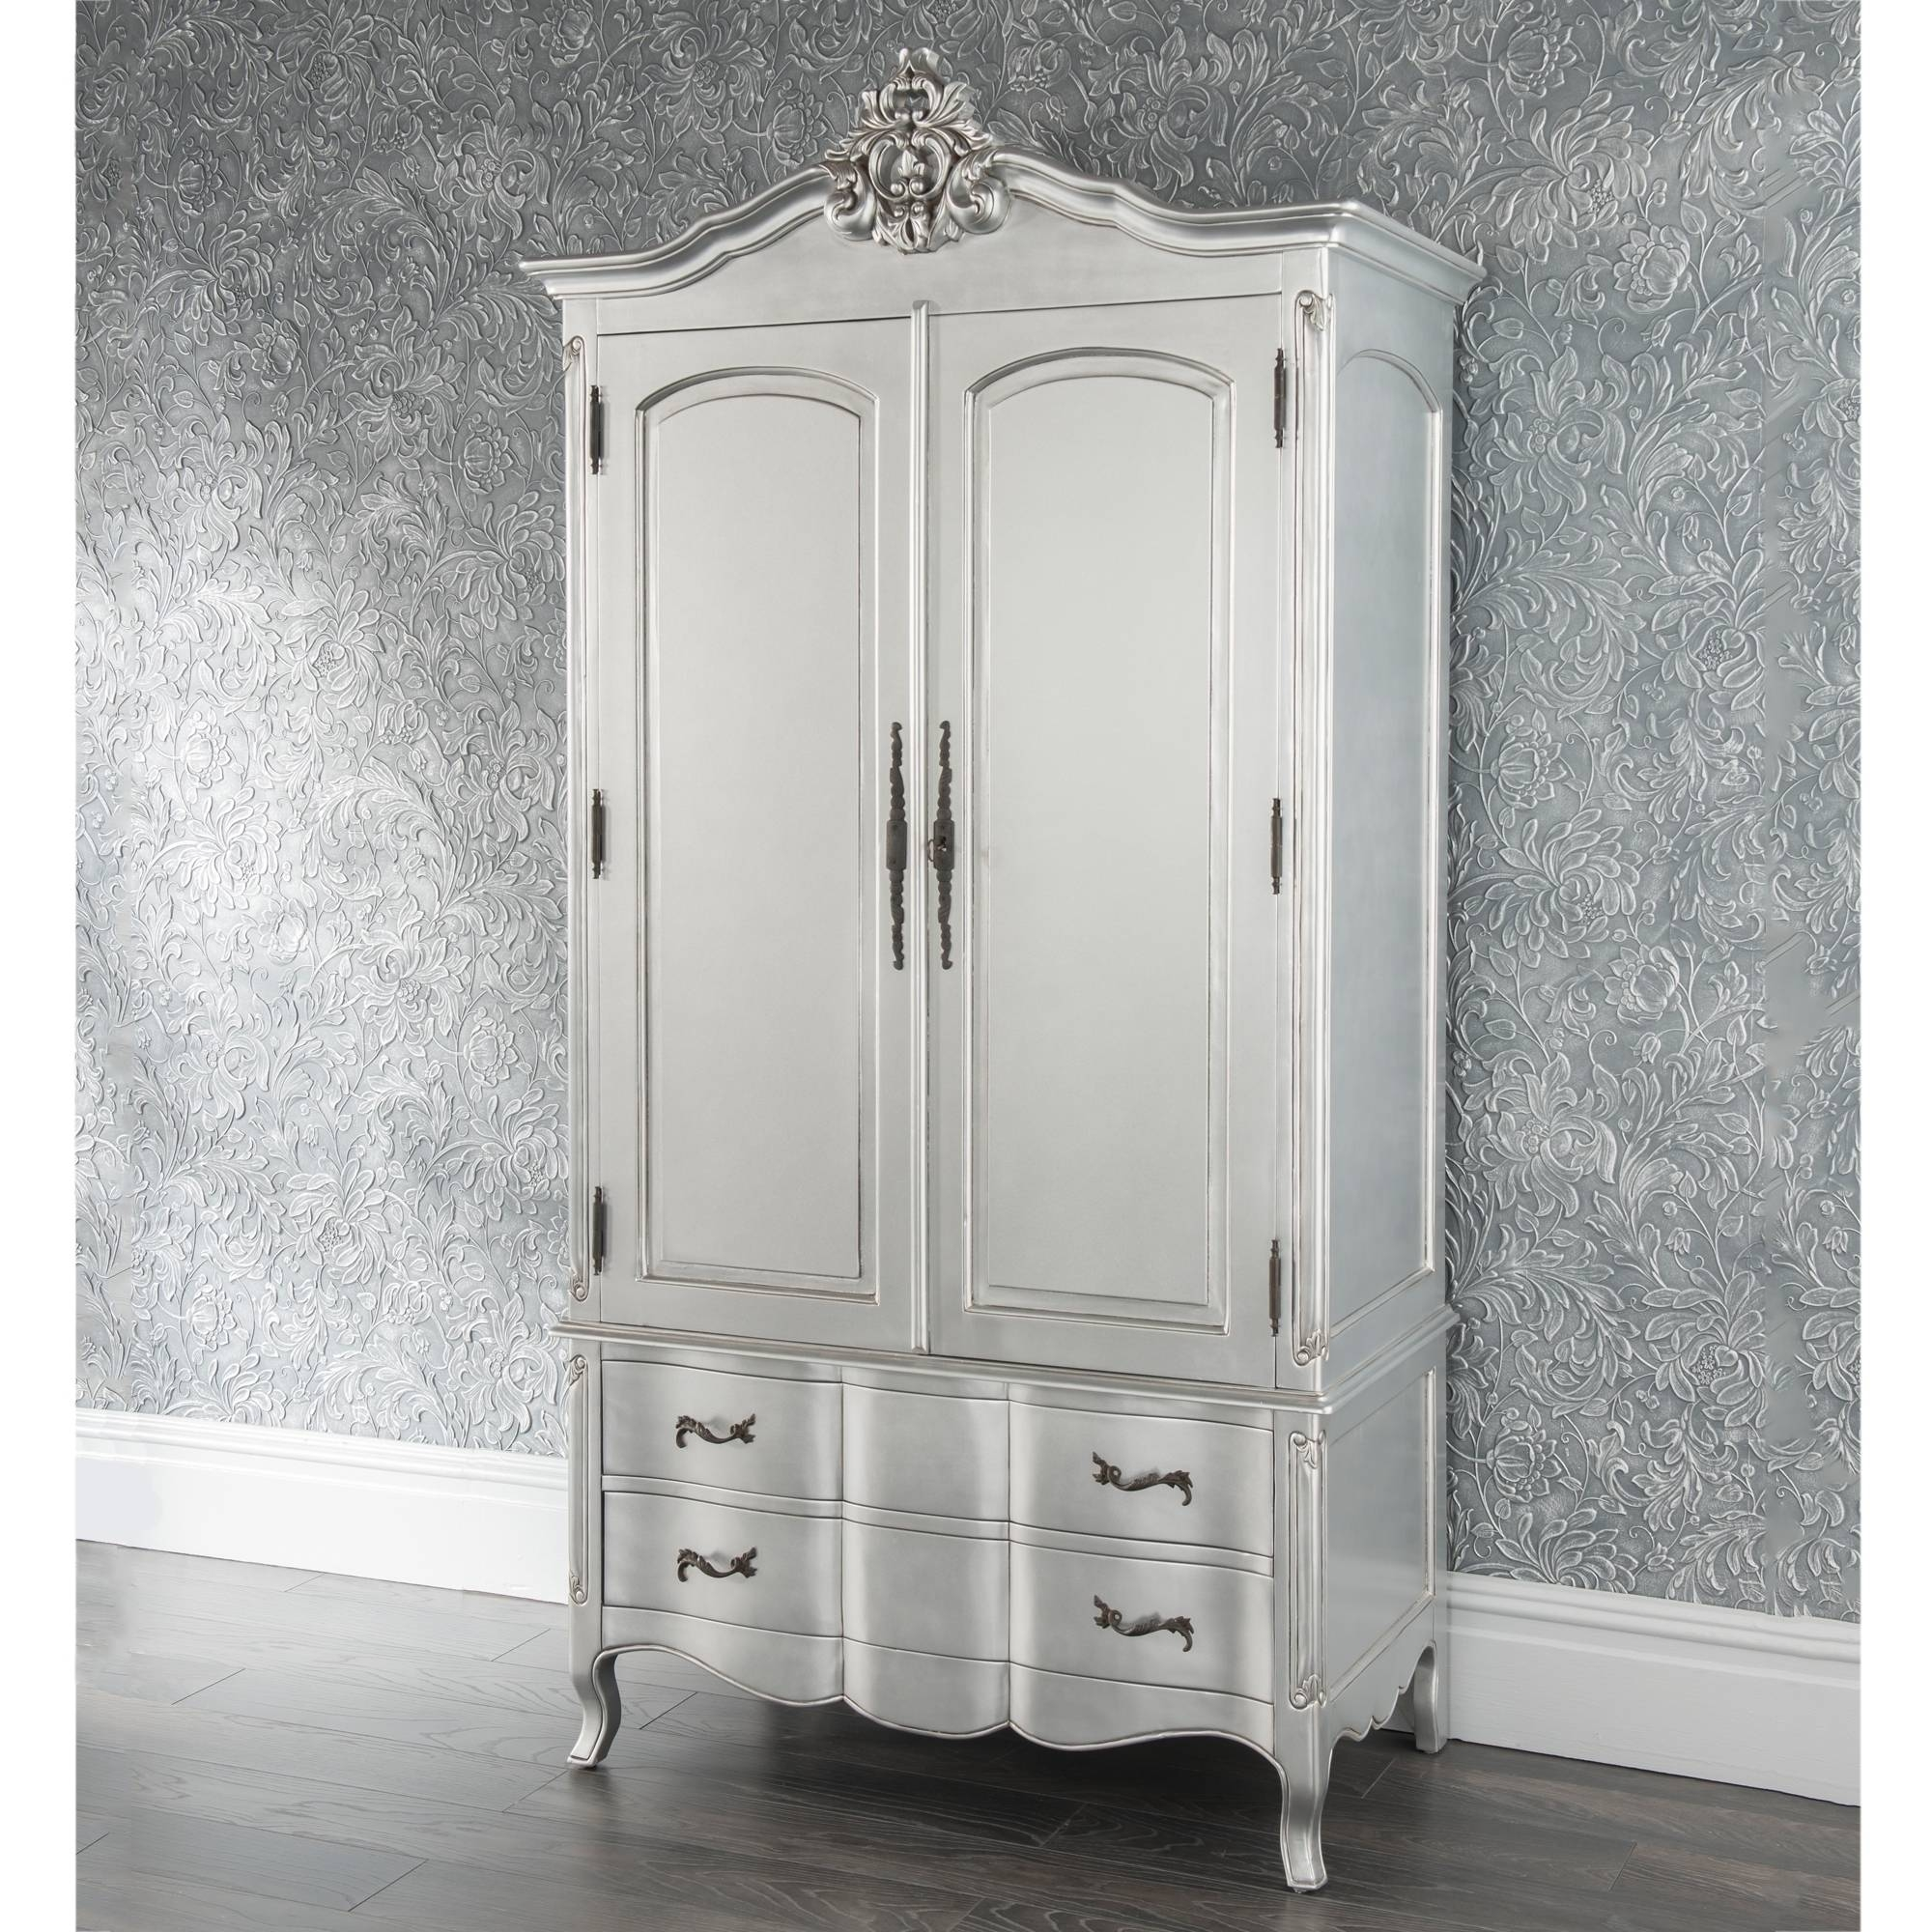 Estelle Antique French Style Wardrobe | French Style Furniture with regard to Silver Wardrobes (Image 7 of 15)